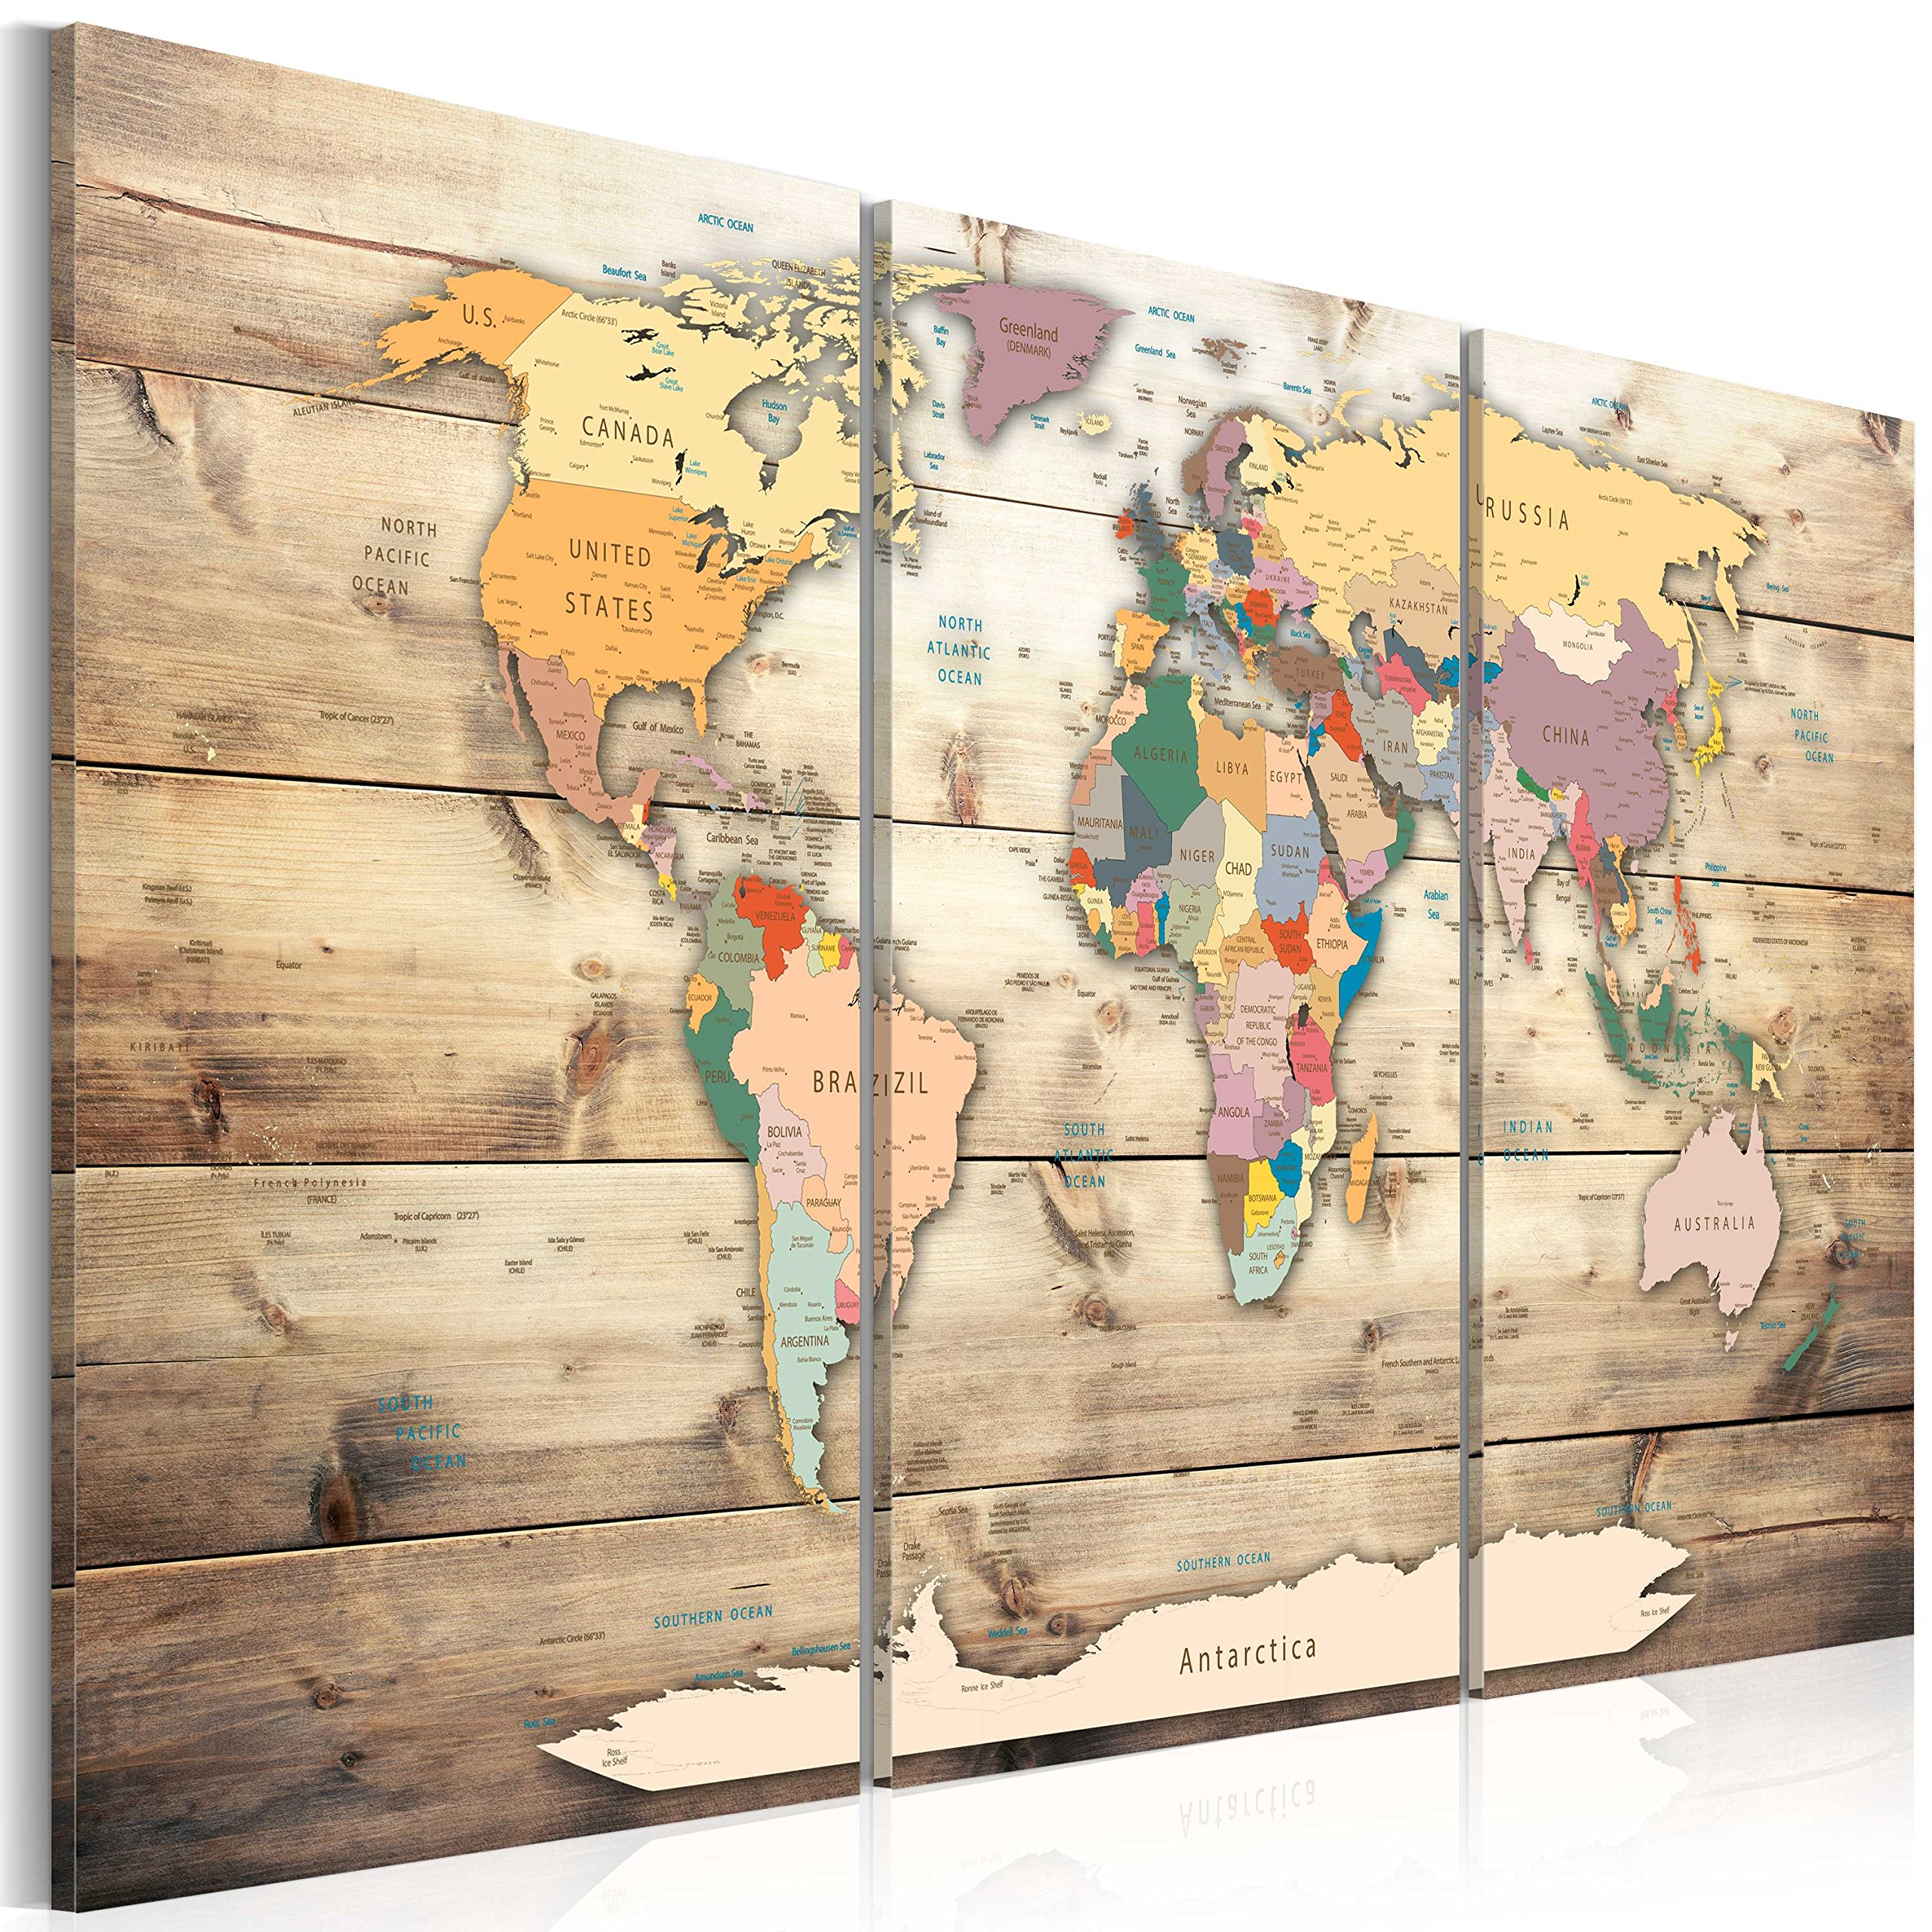 World map wall art amazon murando image 120x80 cm 472 by 315 in gumiabroncs Gallery